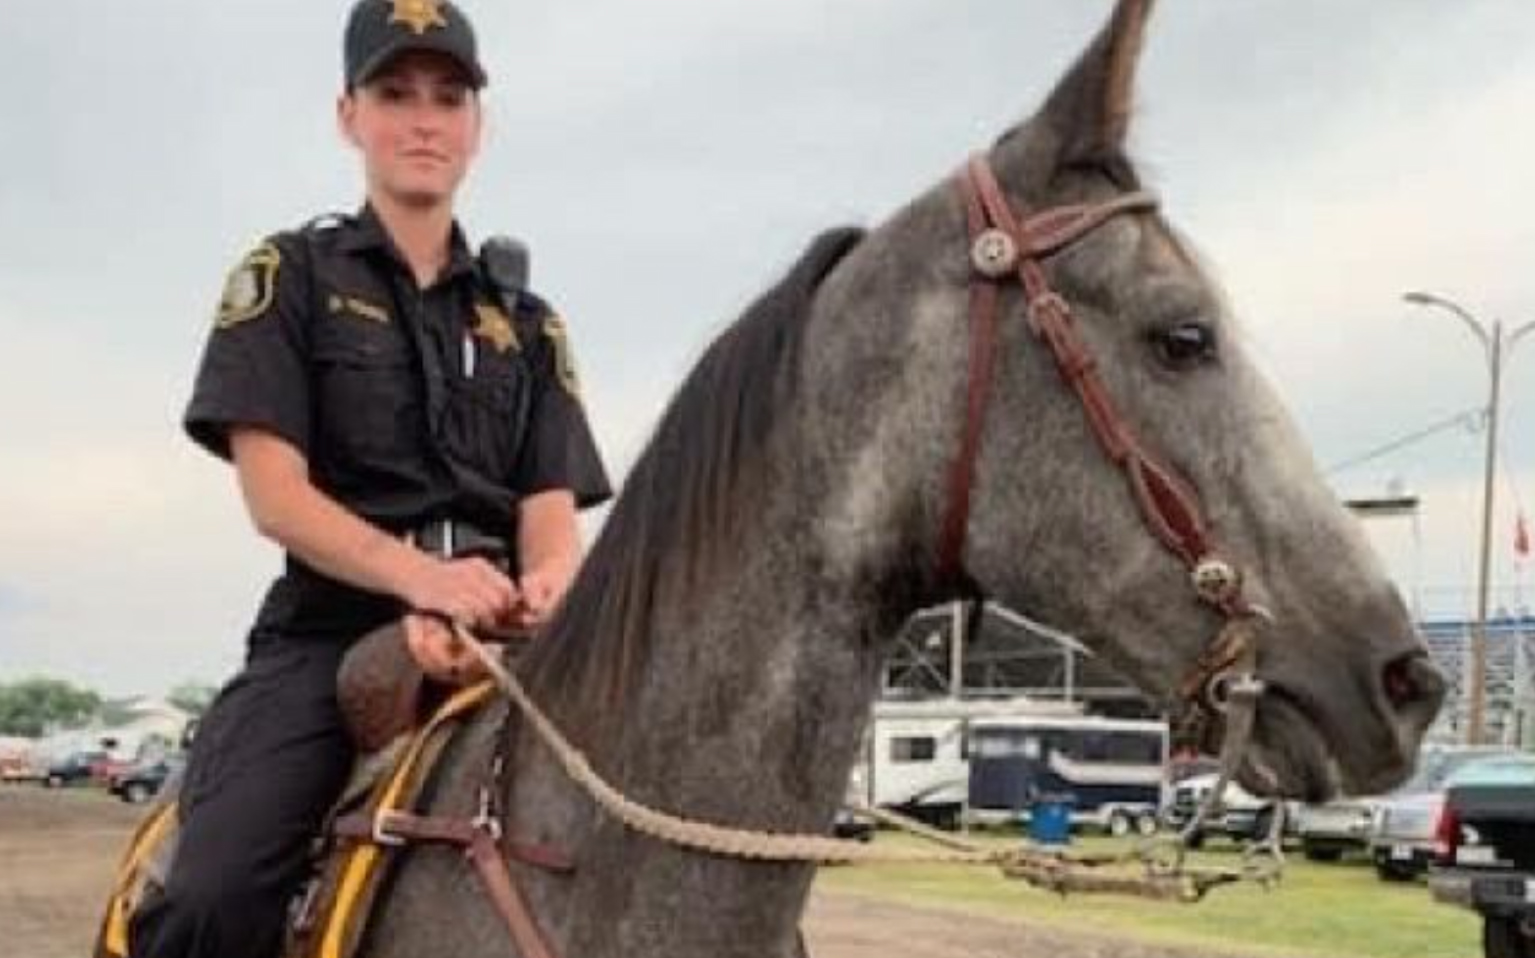 Animal Control Officer Darrian May Young | Monroe County Sheriff's Office, Michigan